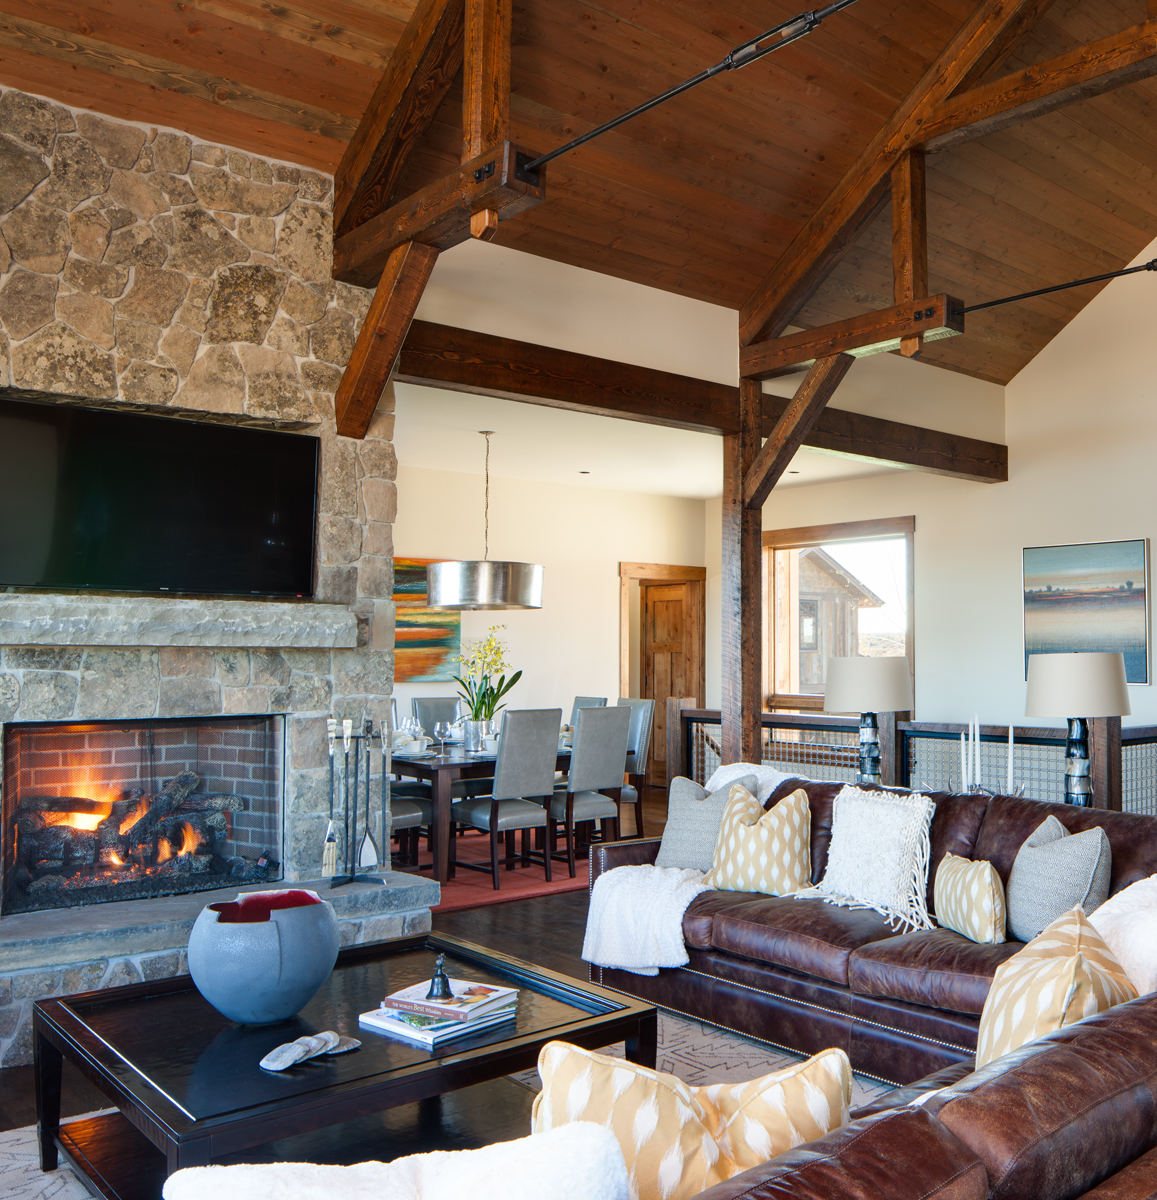 View of main living room in a mountain rustic home in eastern Idaho. The dining area can be seen in the back of the photo and in the forgrround we see a lit fireplace with a coffee table and a leather couc=h.